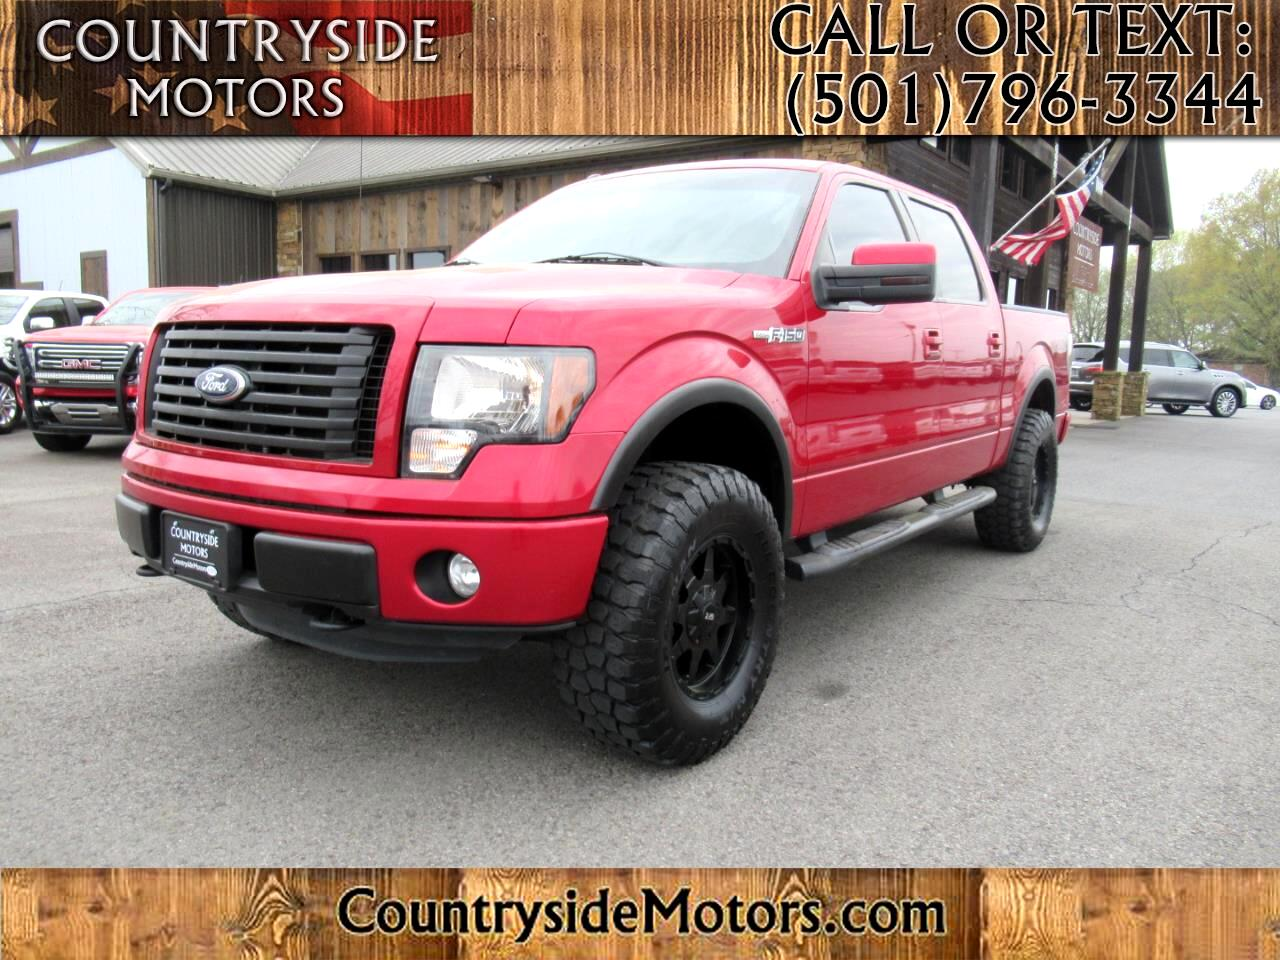 Ford F-150 FX4 2012